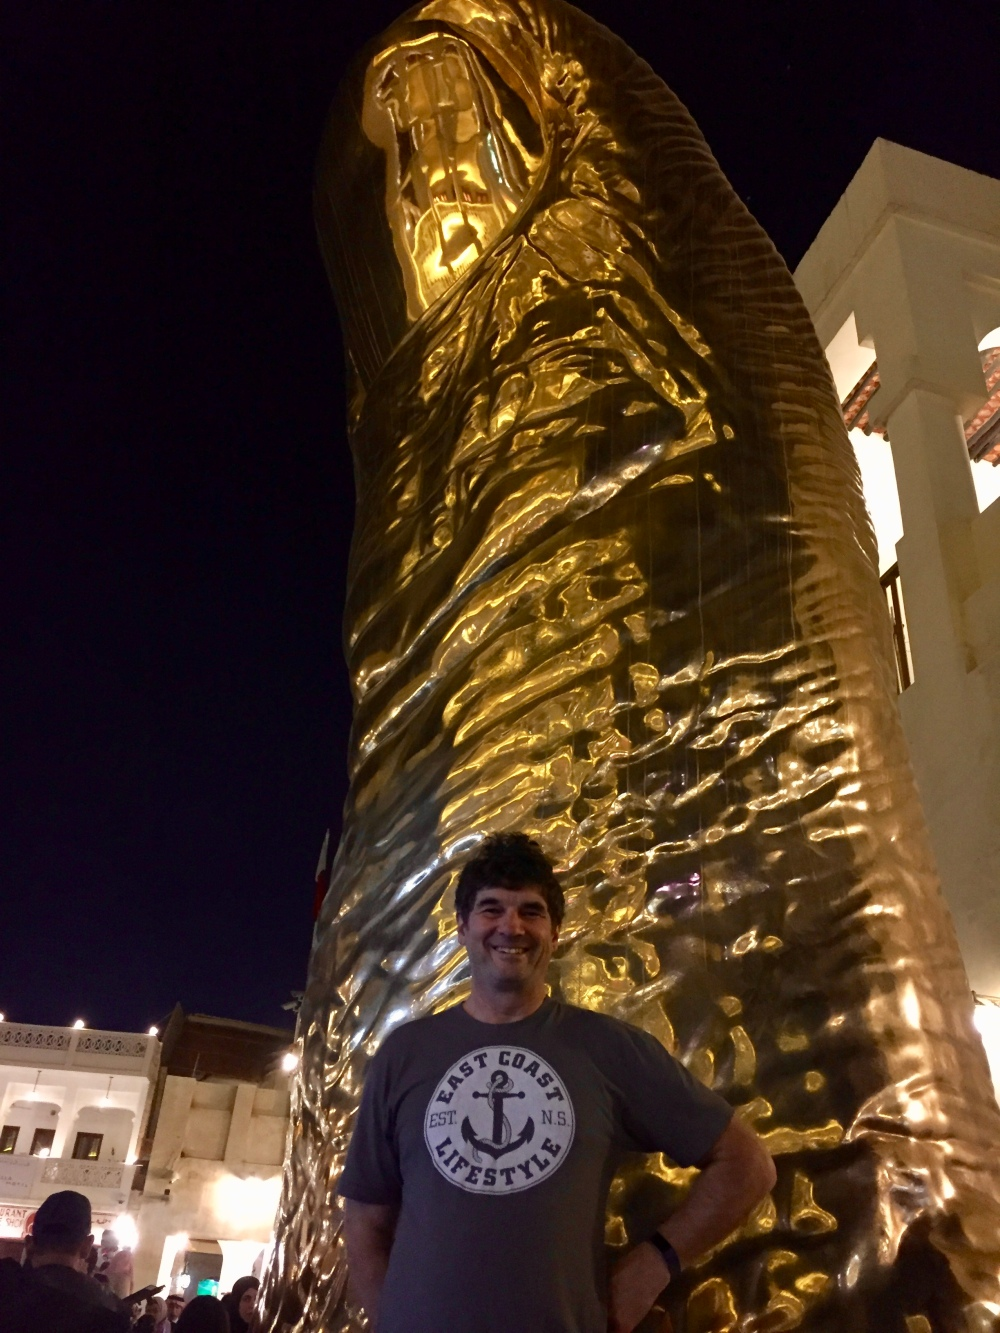 Gold Thumb by César Baldaccini in Souq Waqif to commemorate Qatar's win of the Asian Cup.